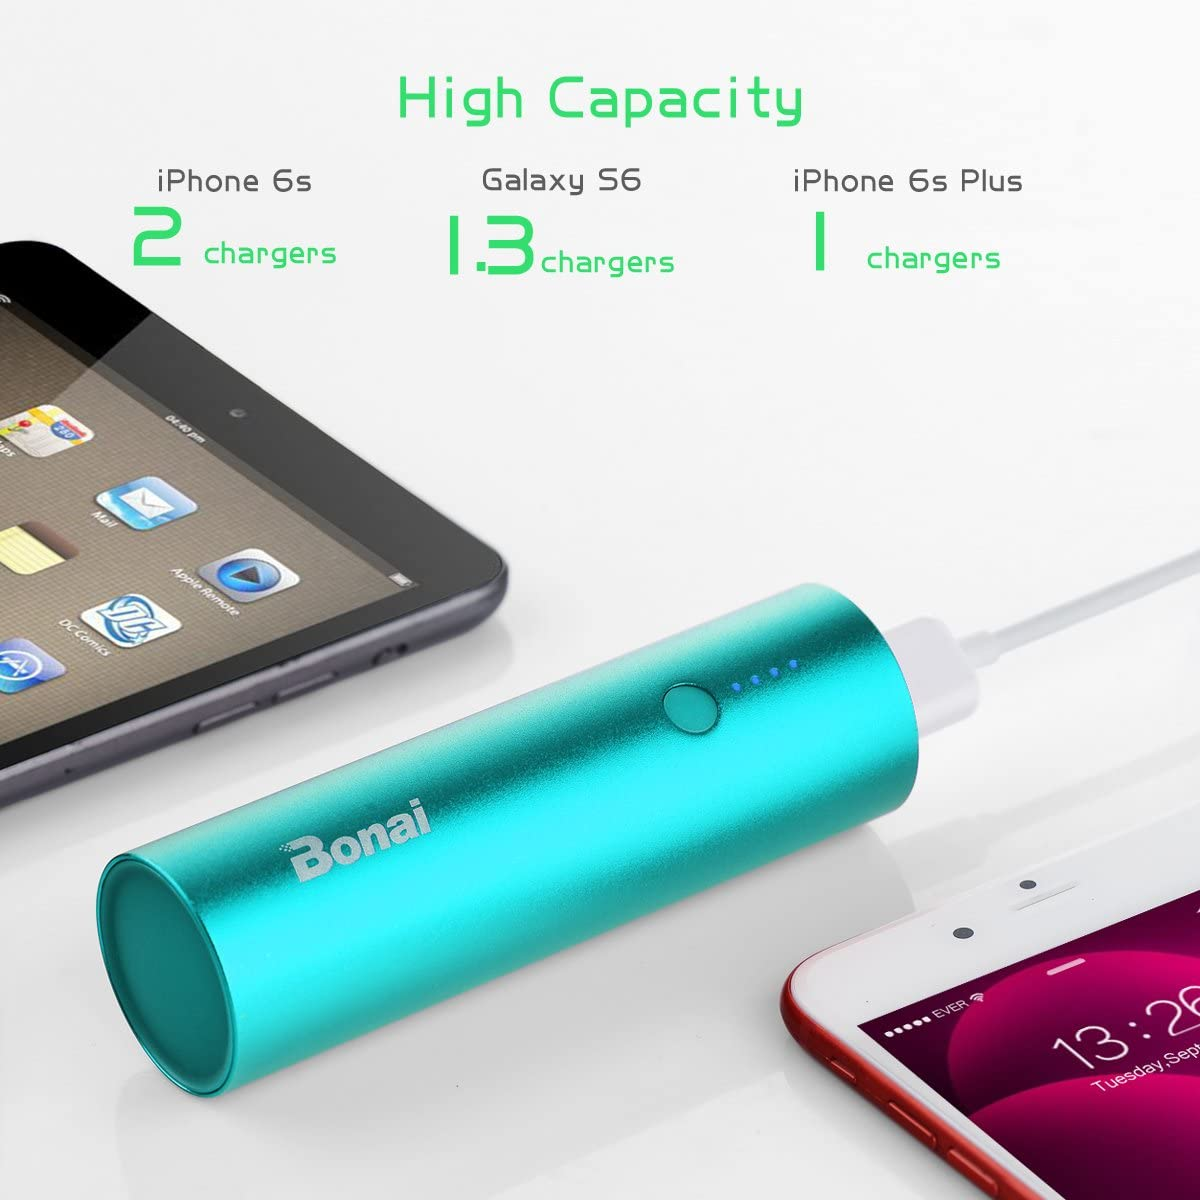 Ultra-Compact Portable Charger BONAI Power Bank 5000mAh, Charging Cable Included Aluminum Travel Slim External Backup Battery Pack High-Speed Output Compatible iPhone,iPad,iPod,Samsung Mint